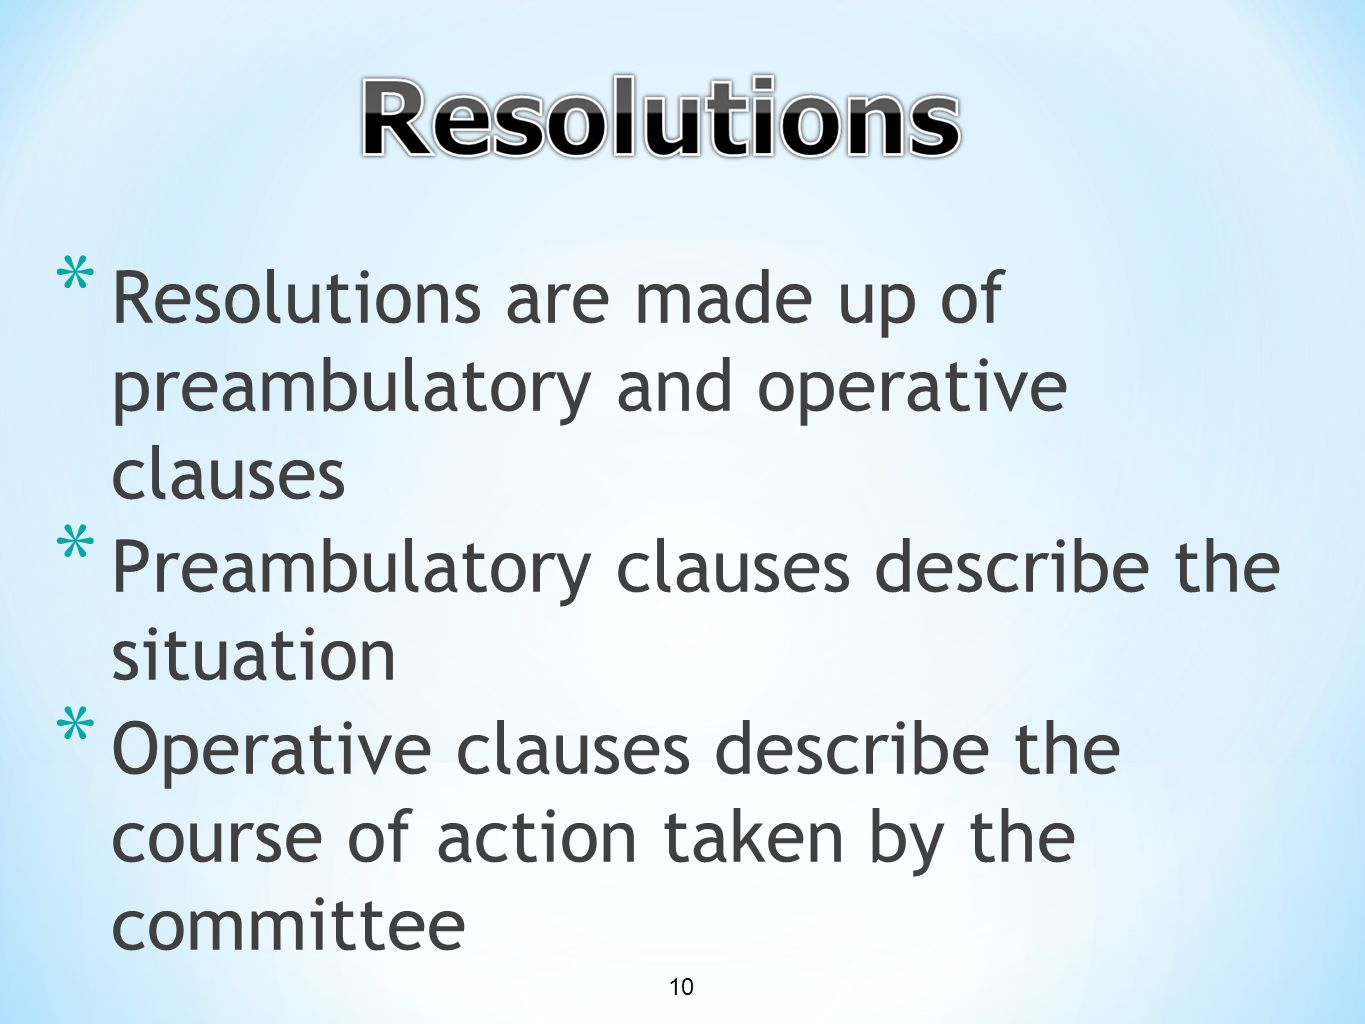 * Resolutions are made up of preambulatory and operative clauses * Preambulatory clauses describe the situation * Operative clauses describe the course of action taken by the committee 10